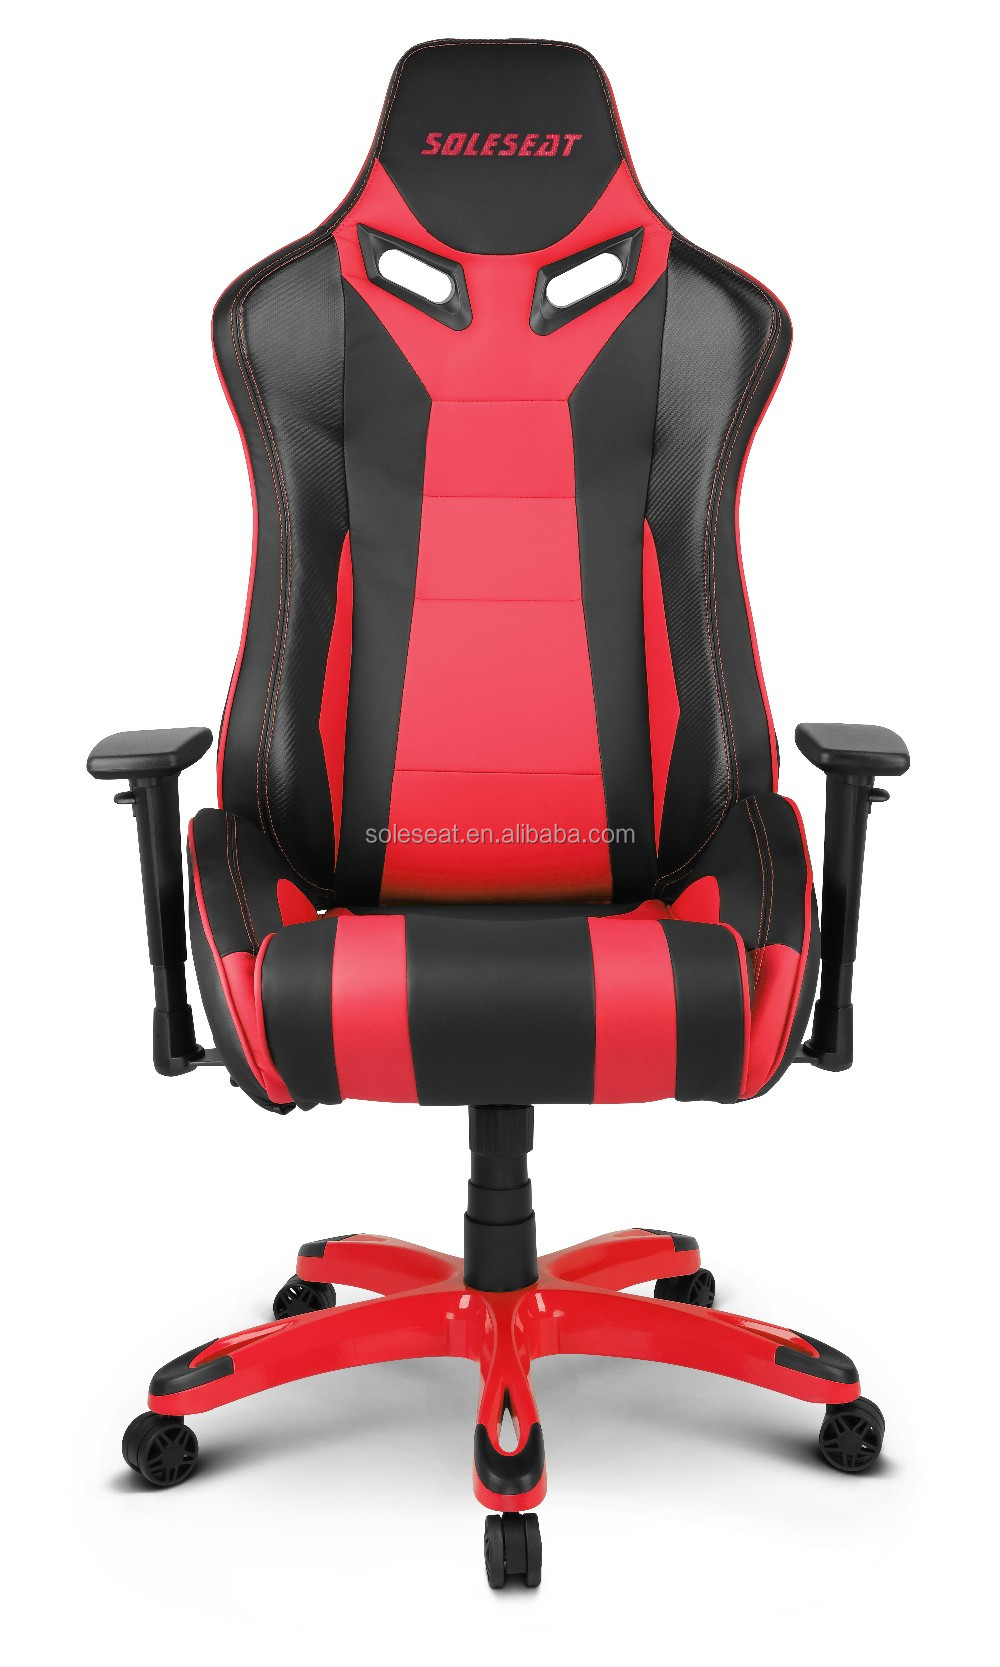 racing game office chair hot sell in Europe with high quality